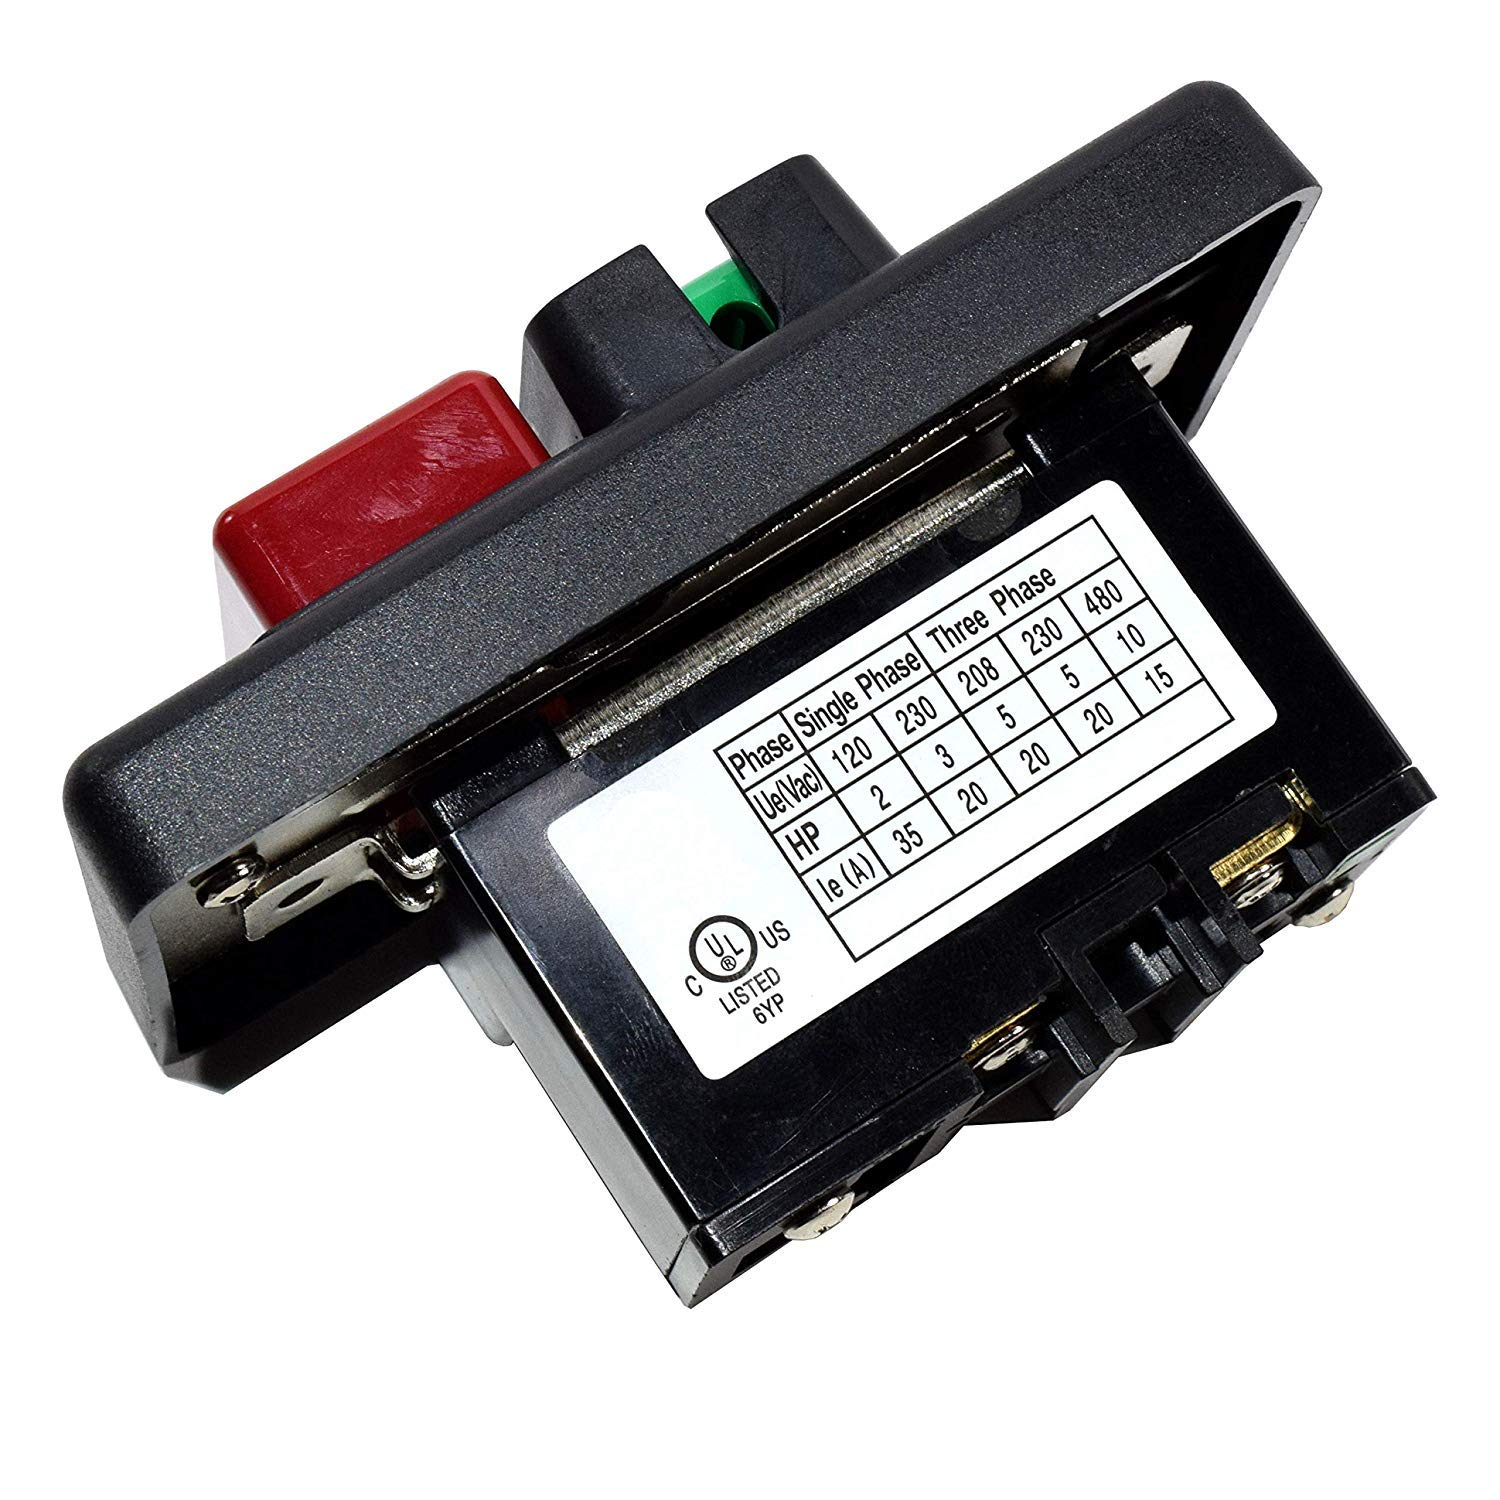 """HQRP On Off Switch for Delta Rockwell Shaper 14"""" Band Saw Bandsaw Sander 110 220 Volt 1 Phase + Coaster by HQRP"""